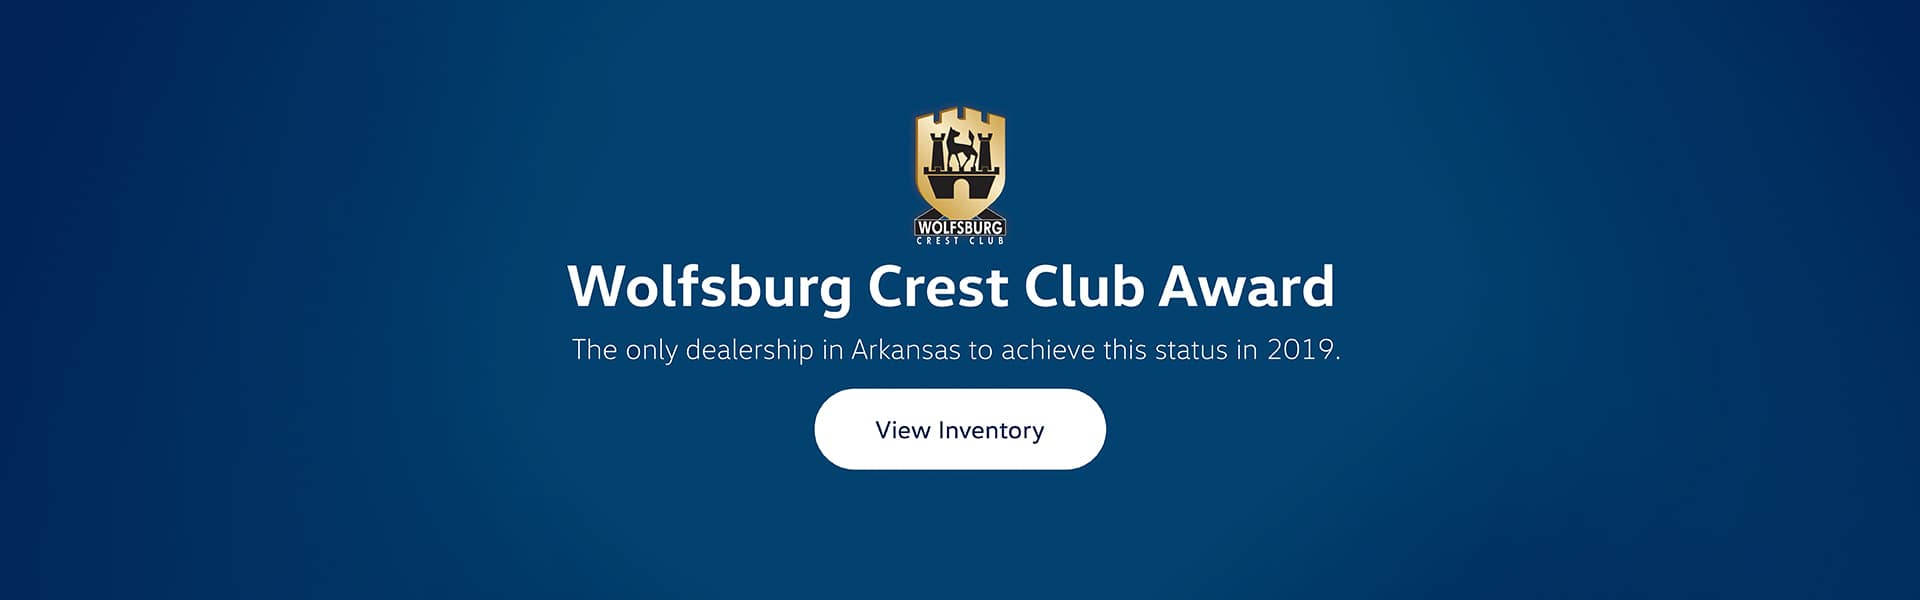 McLarty VW is proud to achieve Wolfsburg Crest status